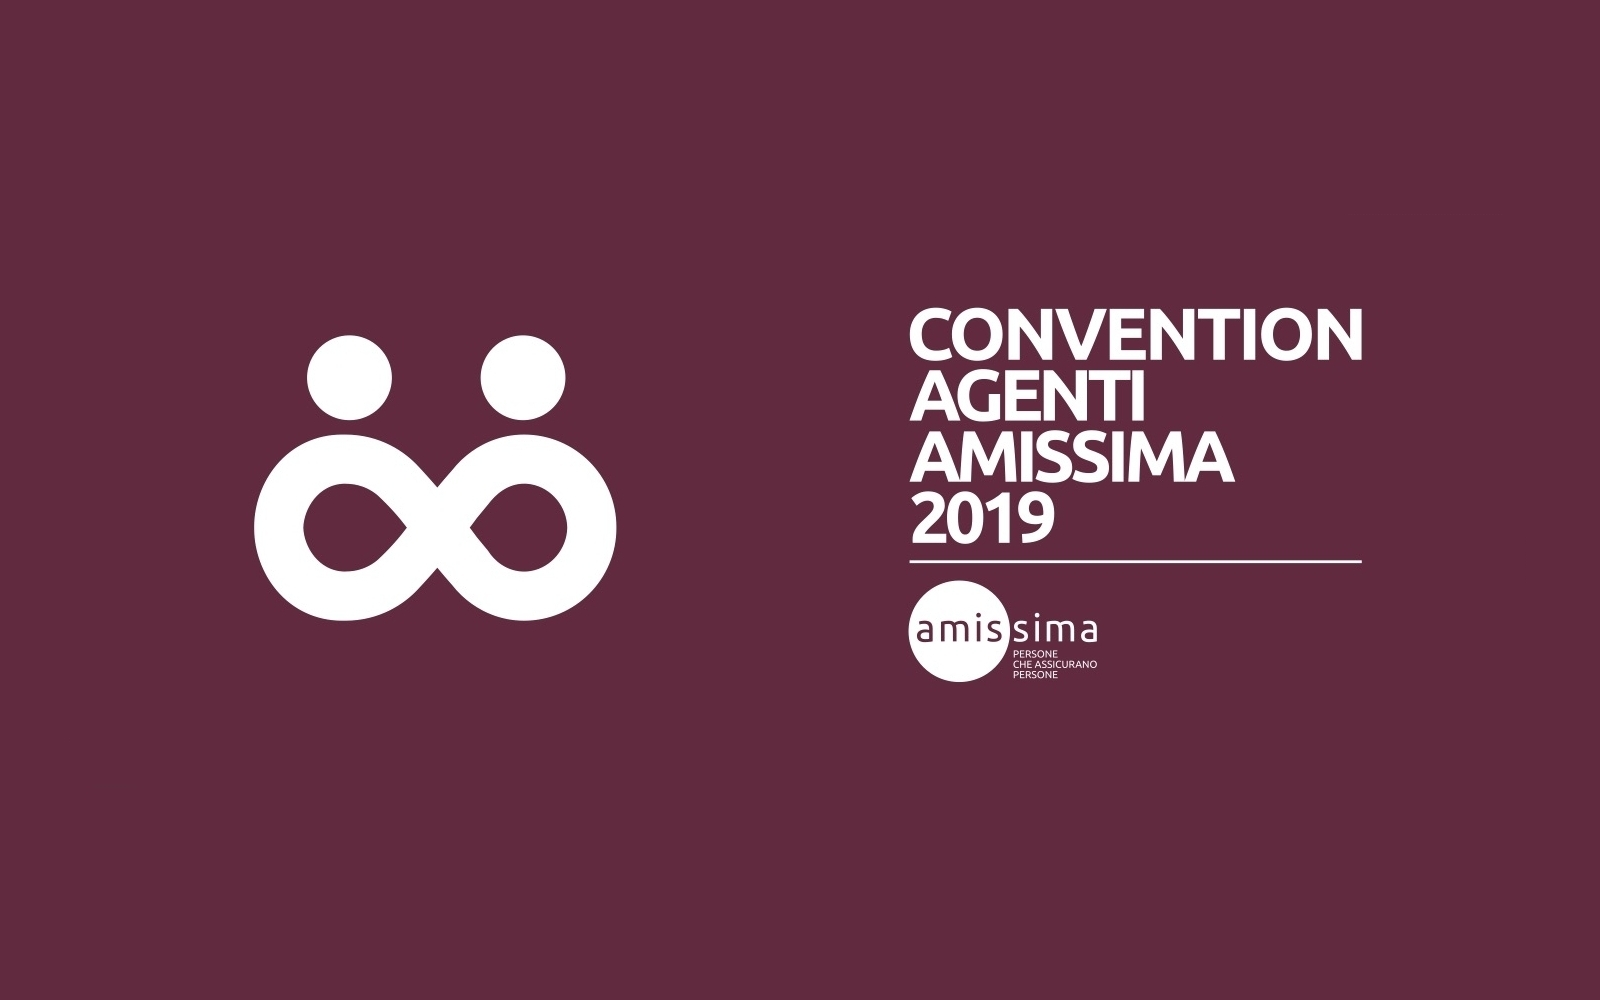 Amissima - Convention Agenti 2019 (2)